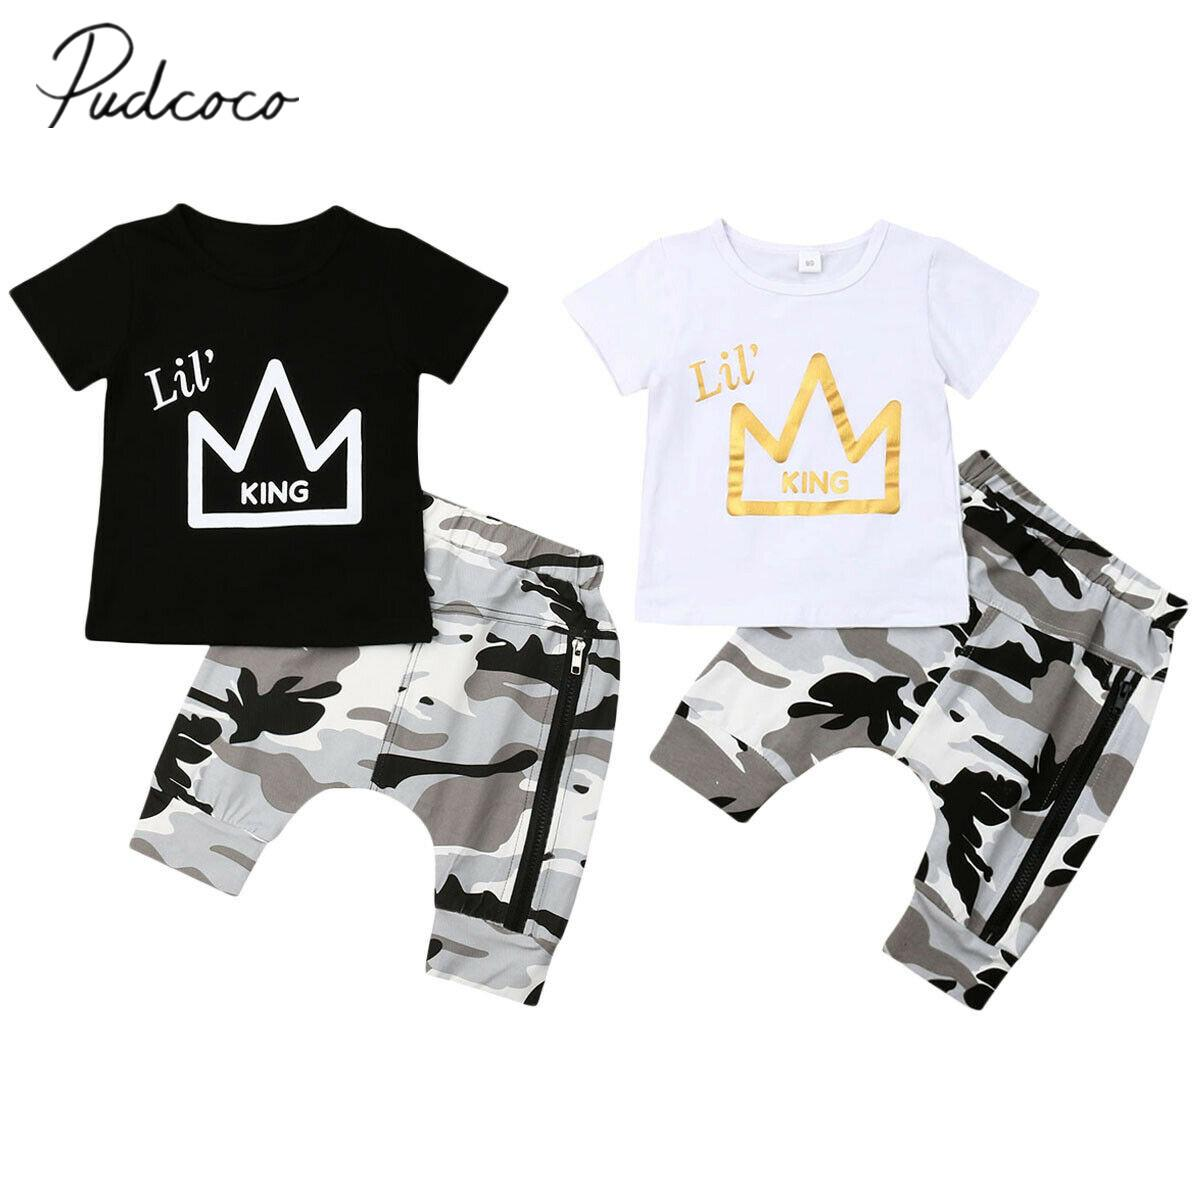 2019 Baby Summer Clothing Toddler Kids Baby Boys Crown Print Tops T-shirt Camo Zip Pants Fashion Outfits 2pcs Set Clothes